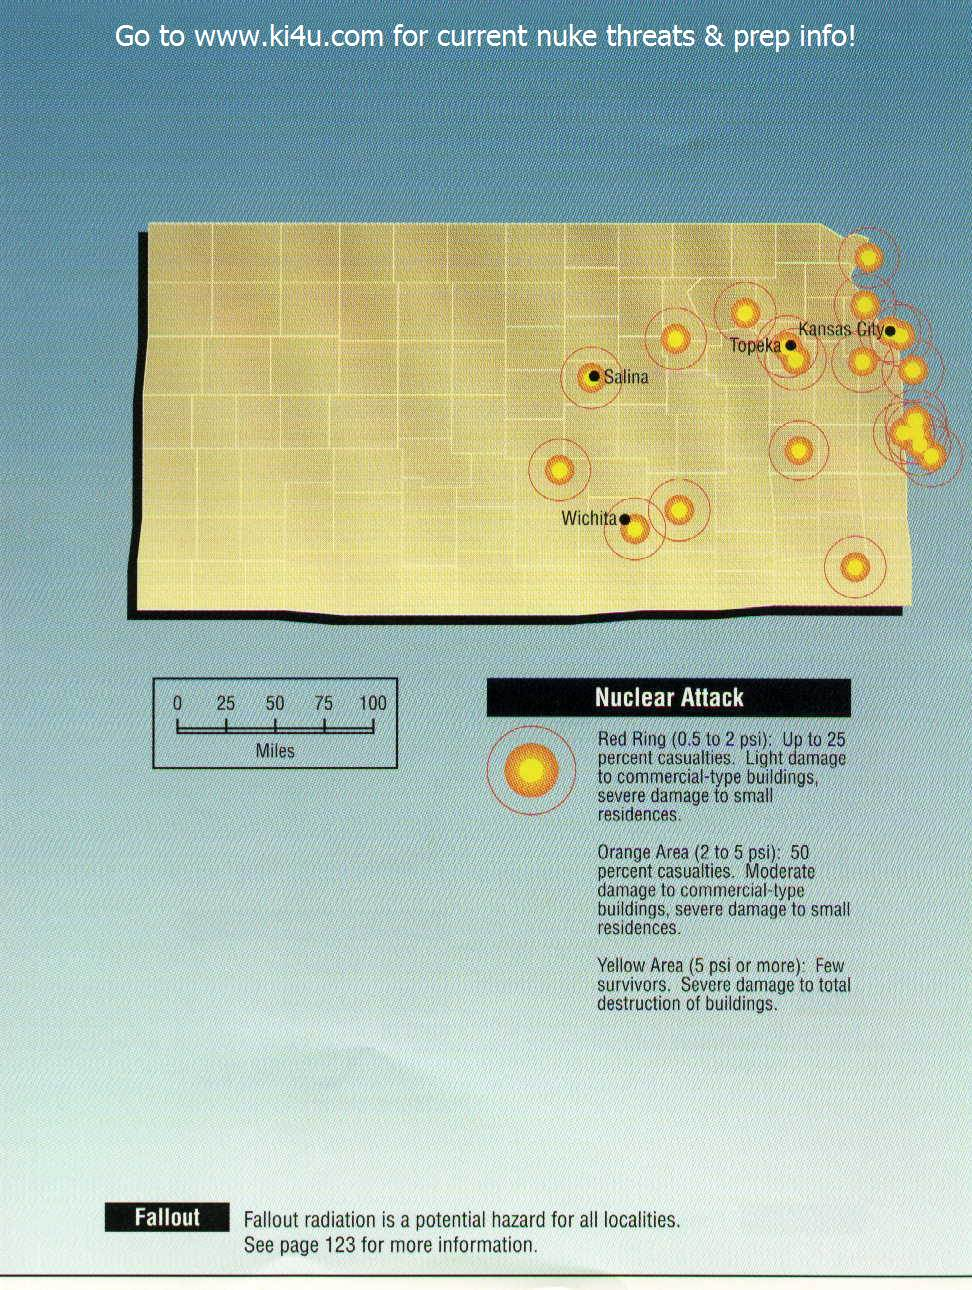 Nuclear War Fallout Shelter Survival Info for Kansas with FEMA